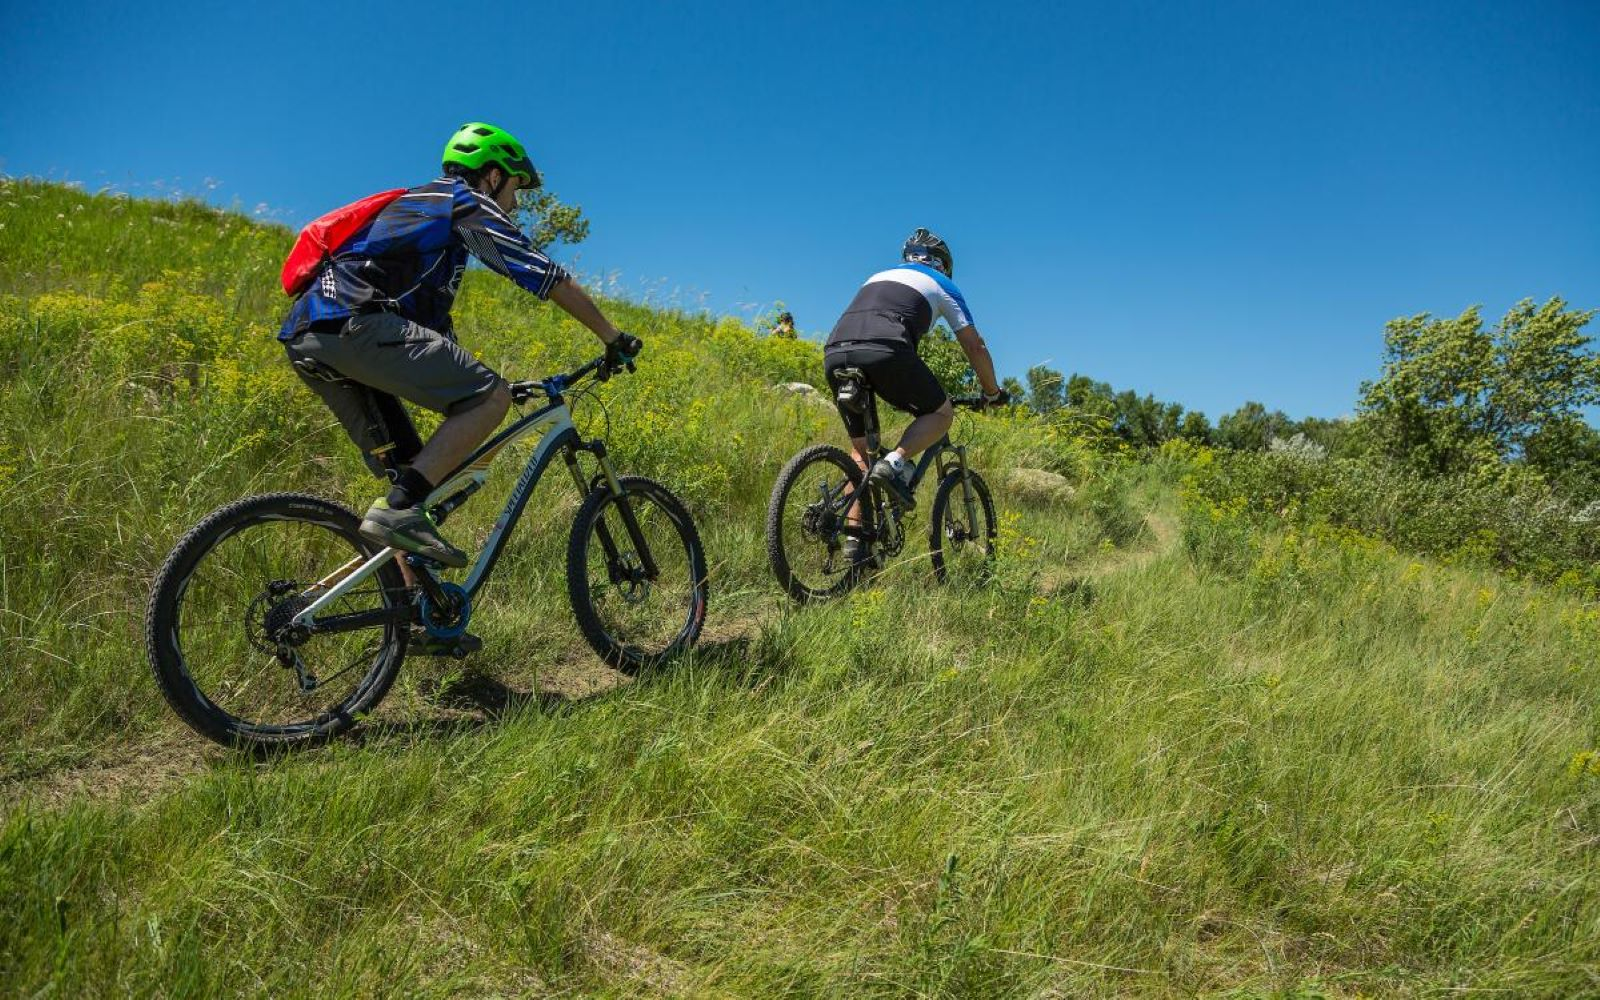 two people Mountain Biking up a grassy hill on a summer day in Jamestown ND with clear blue skies in the background